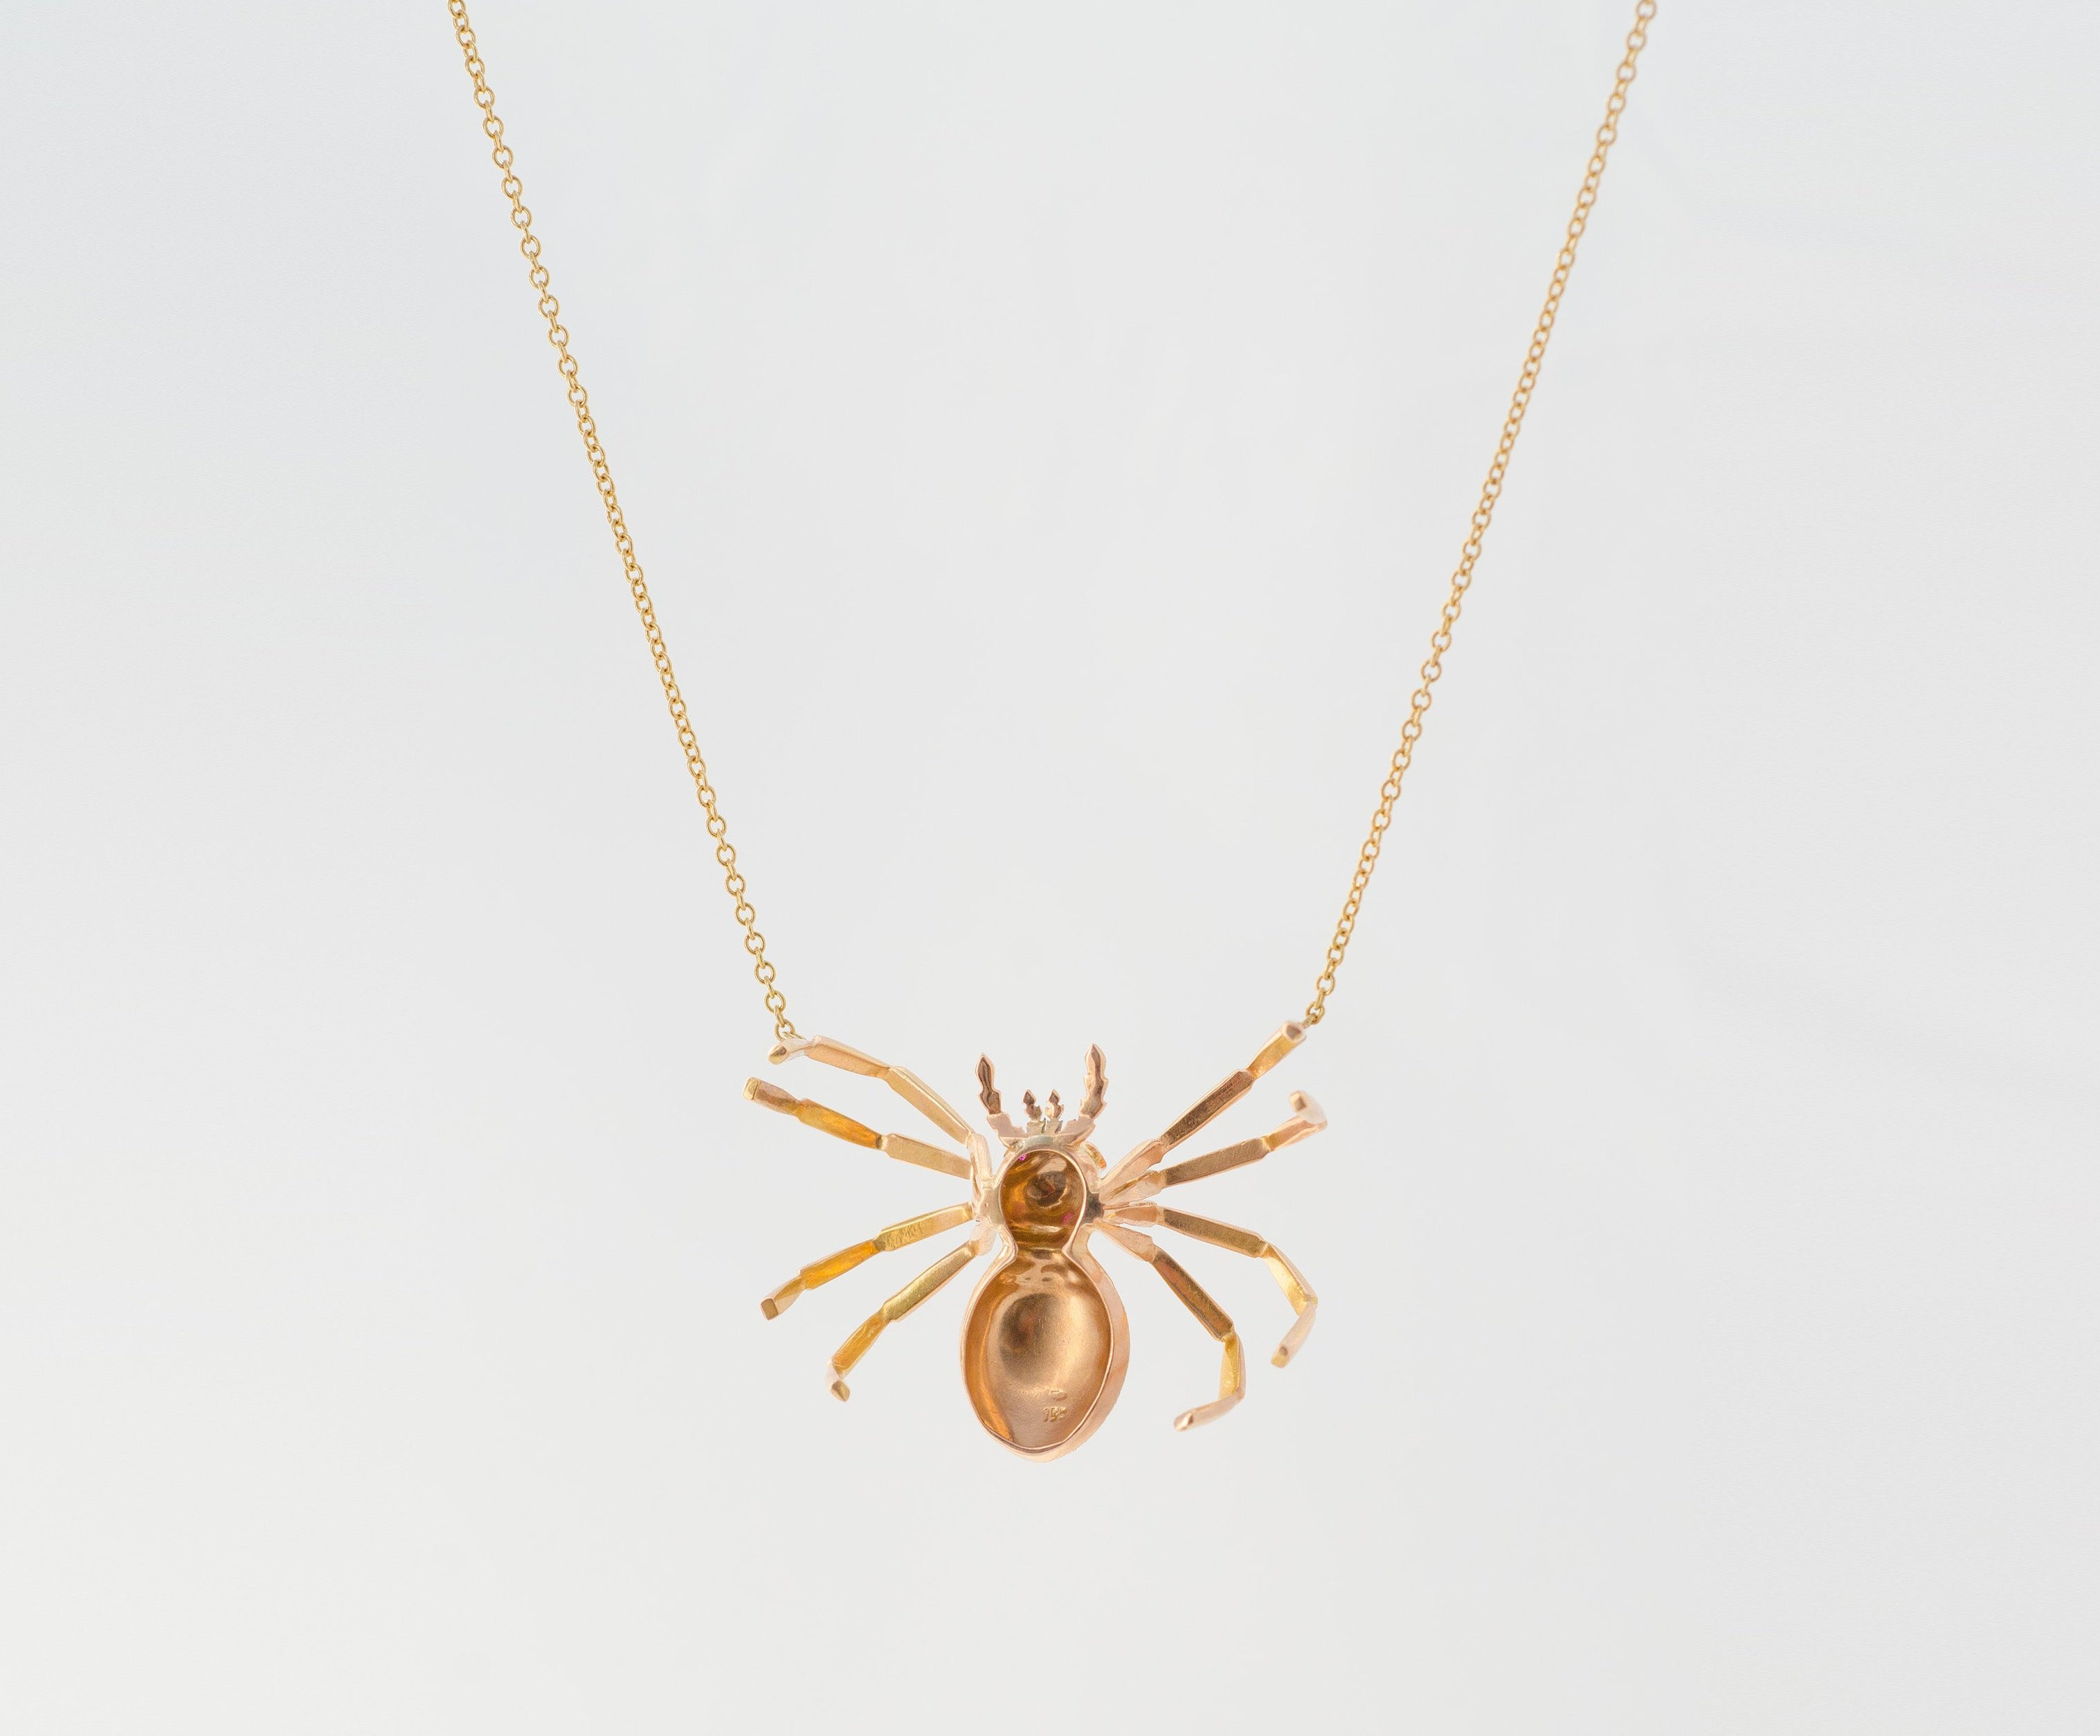 Vintage Gold & Ruby Spider Necklace